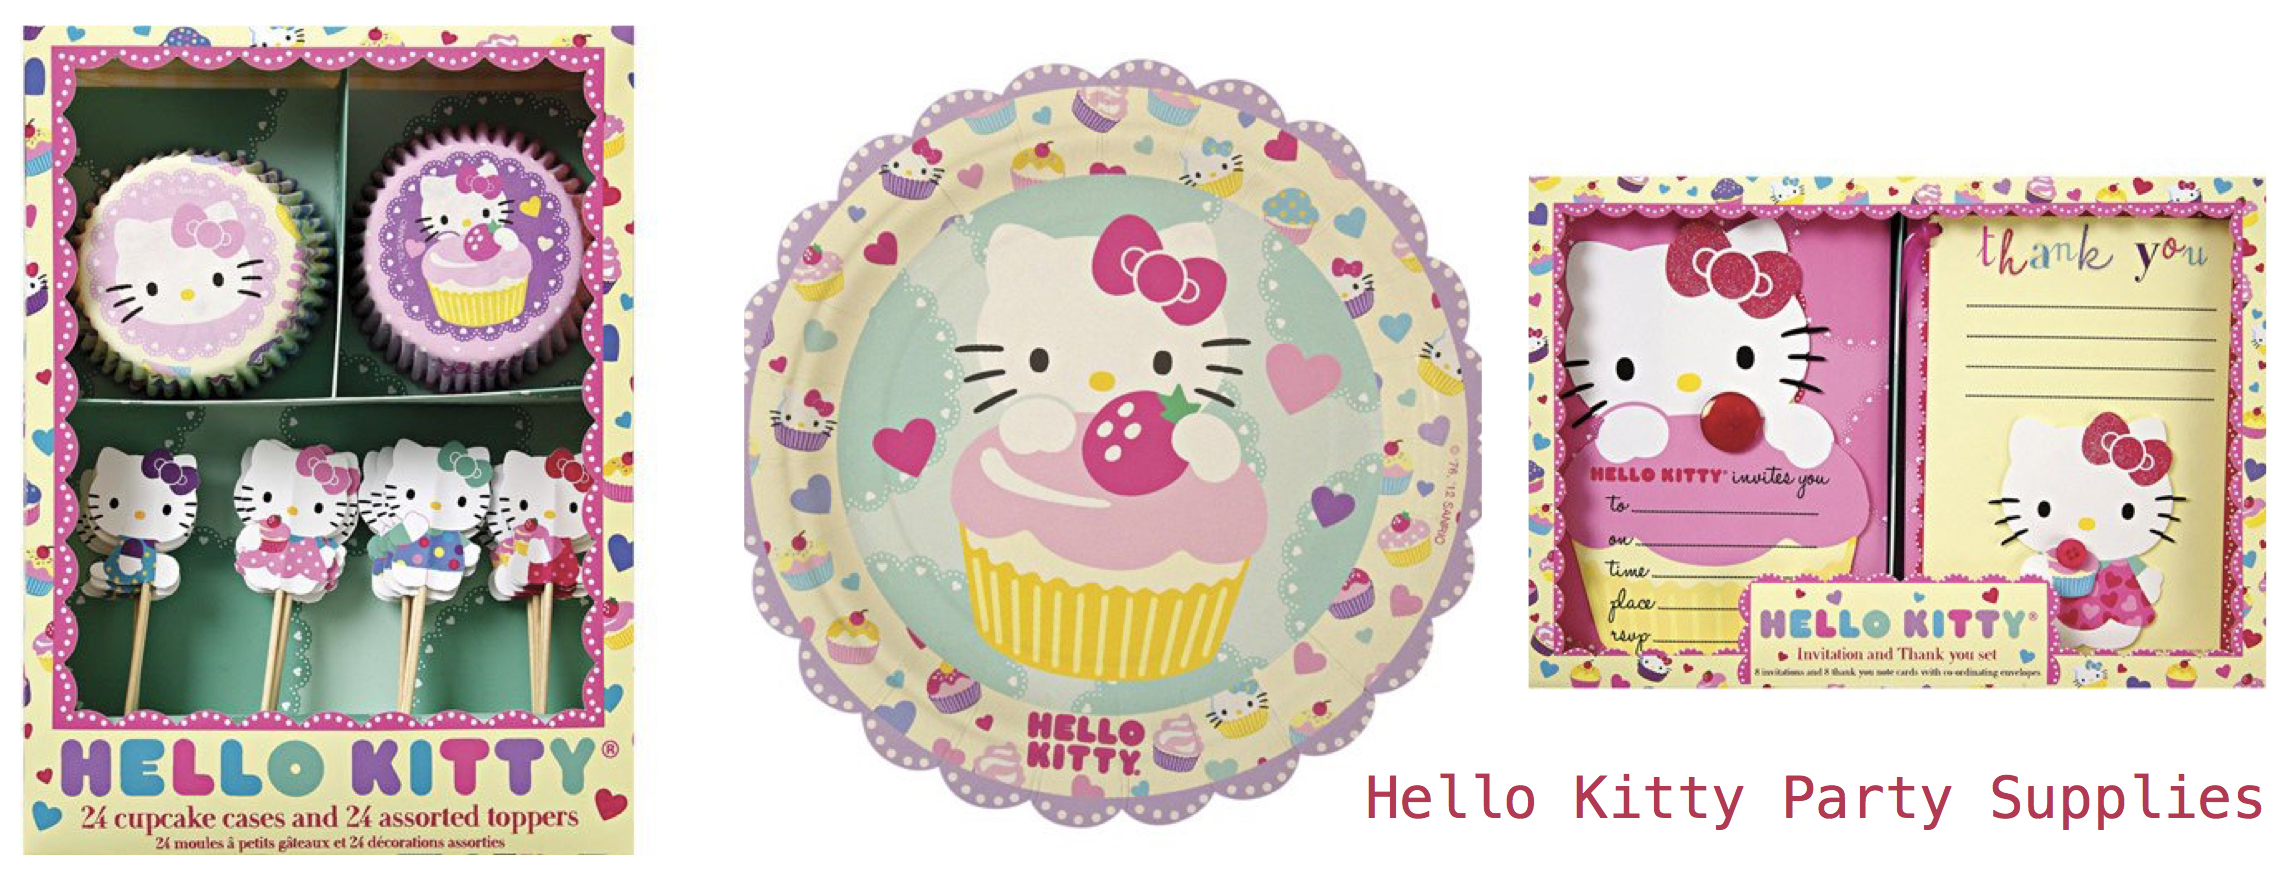 Hello Kitty Party Supplies, Celebrate Cat Cuteness